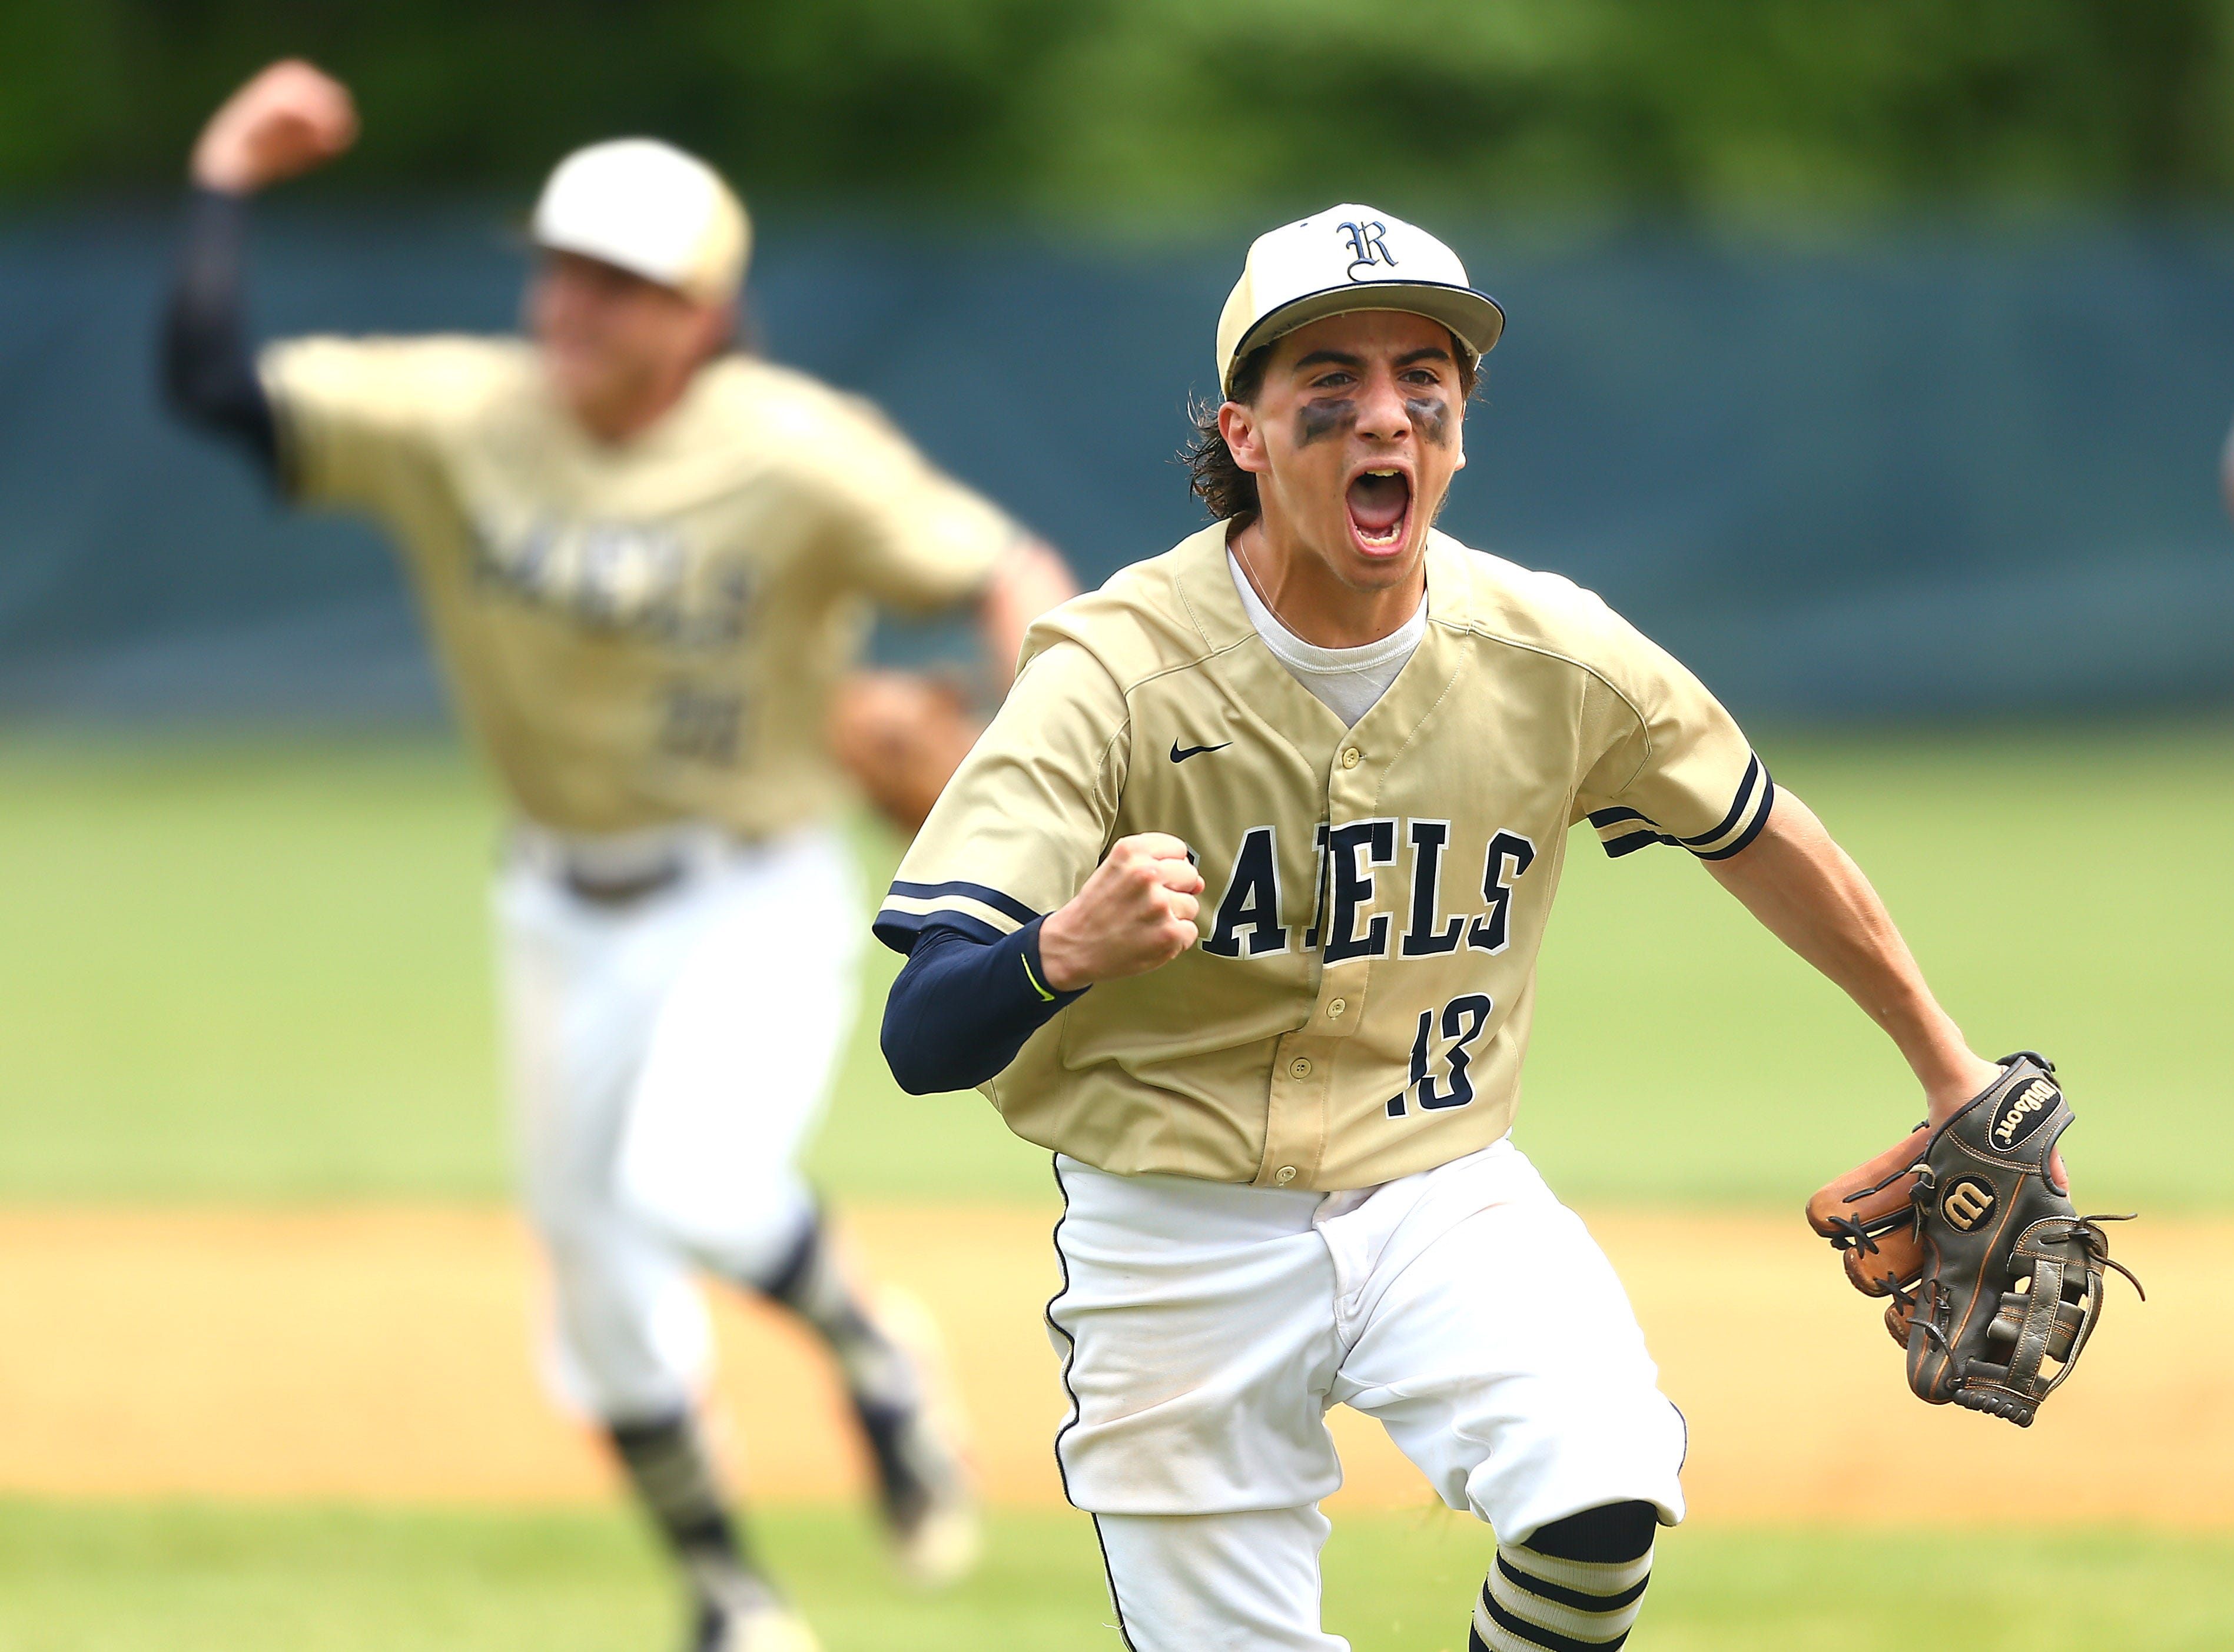 Roxbury second baseman Brian Dachowski  lets out a yell after the Gaels got out of bases loaded inning vs. Pascack Valley in NJSIAA North 1 Group III baseball final. June 1, 2018. Roxbury, NJ